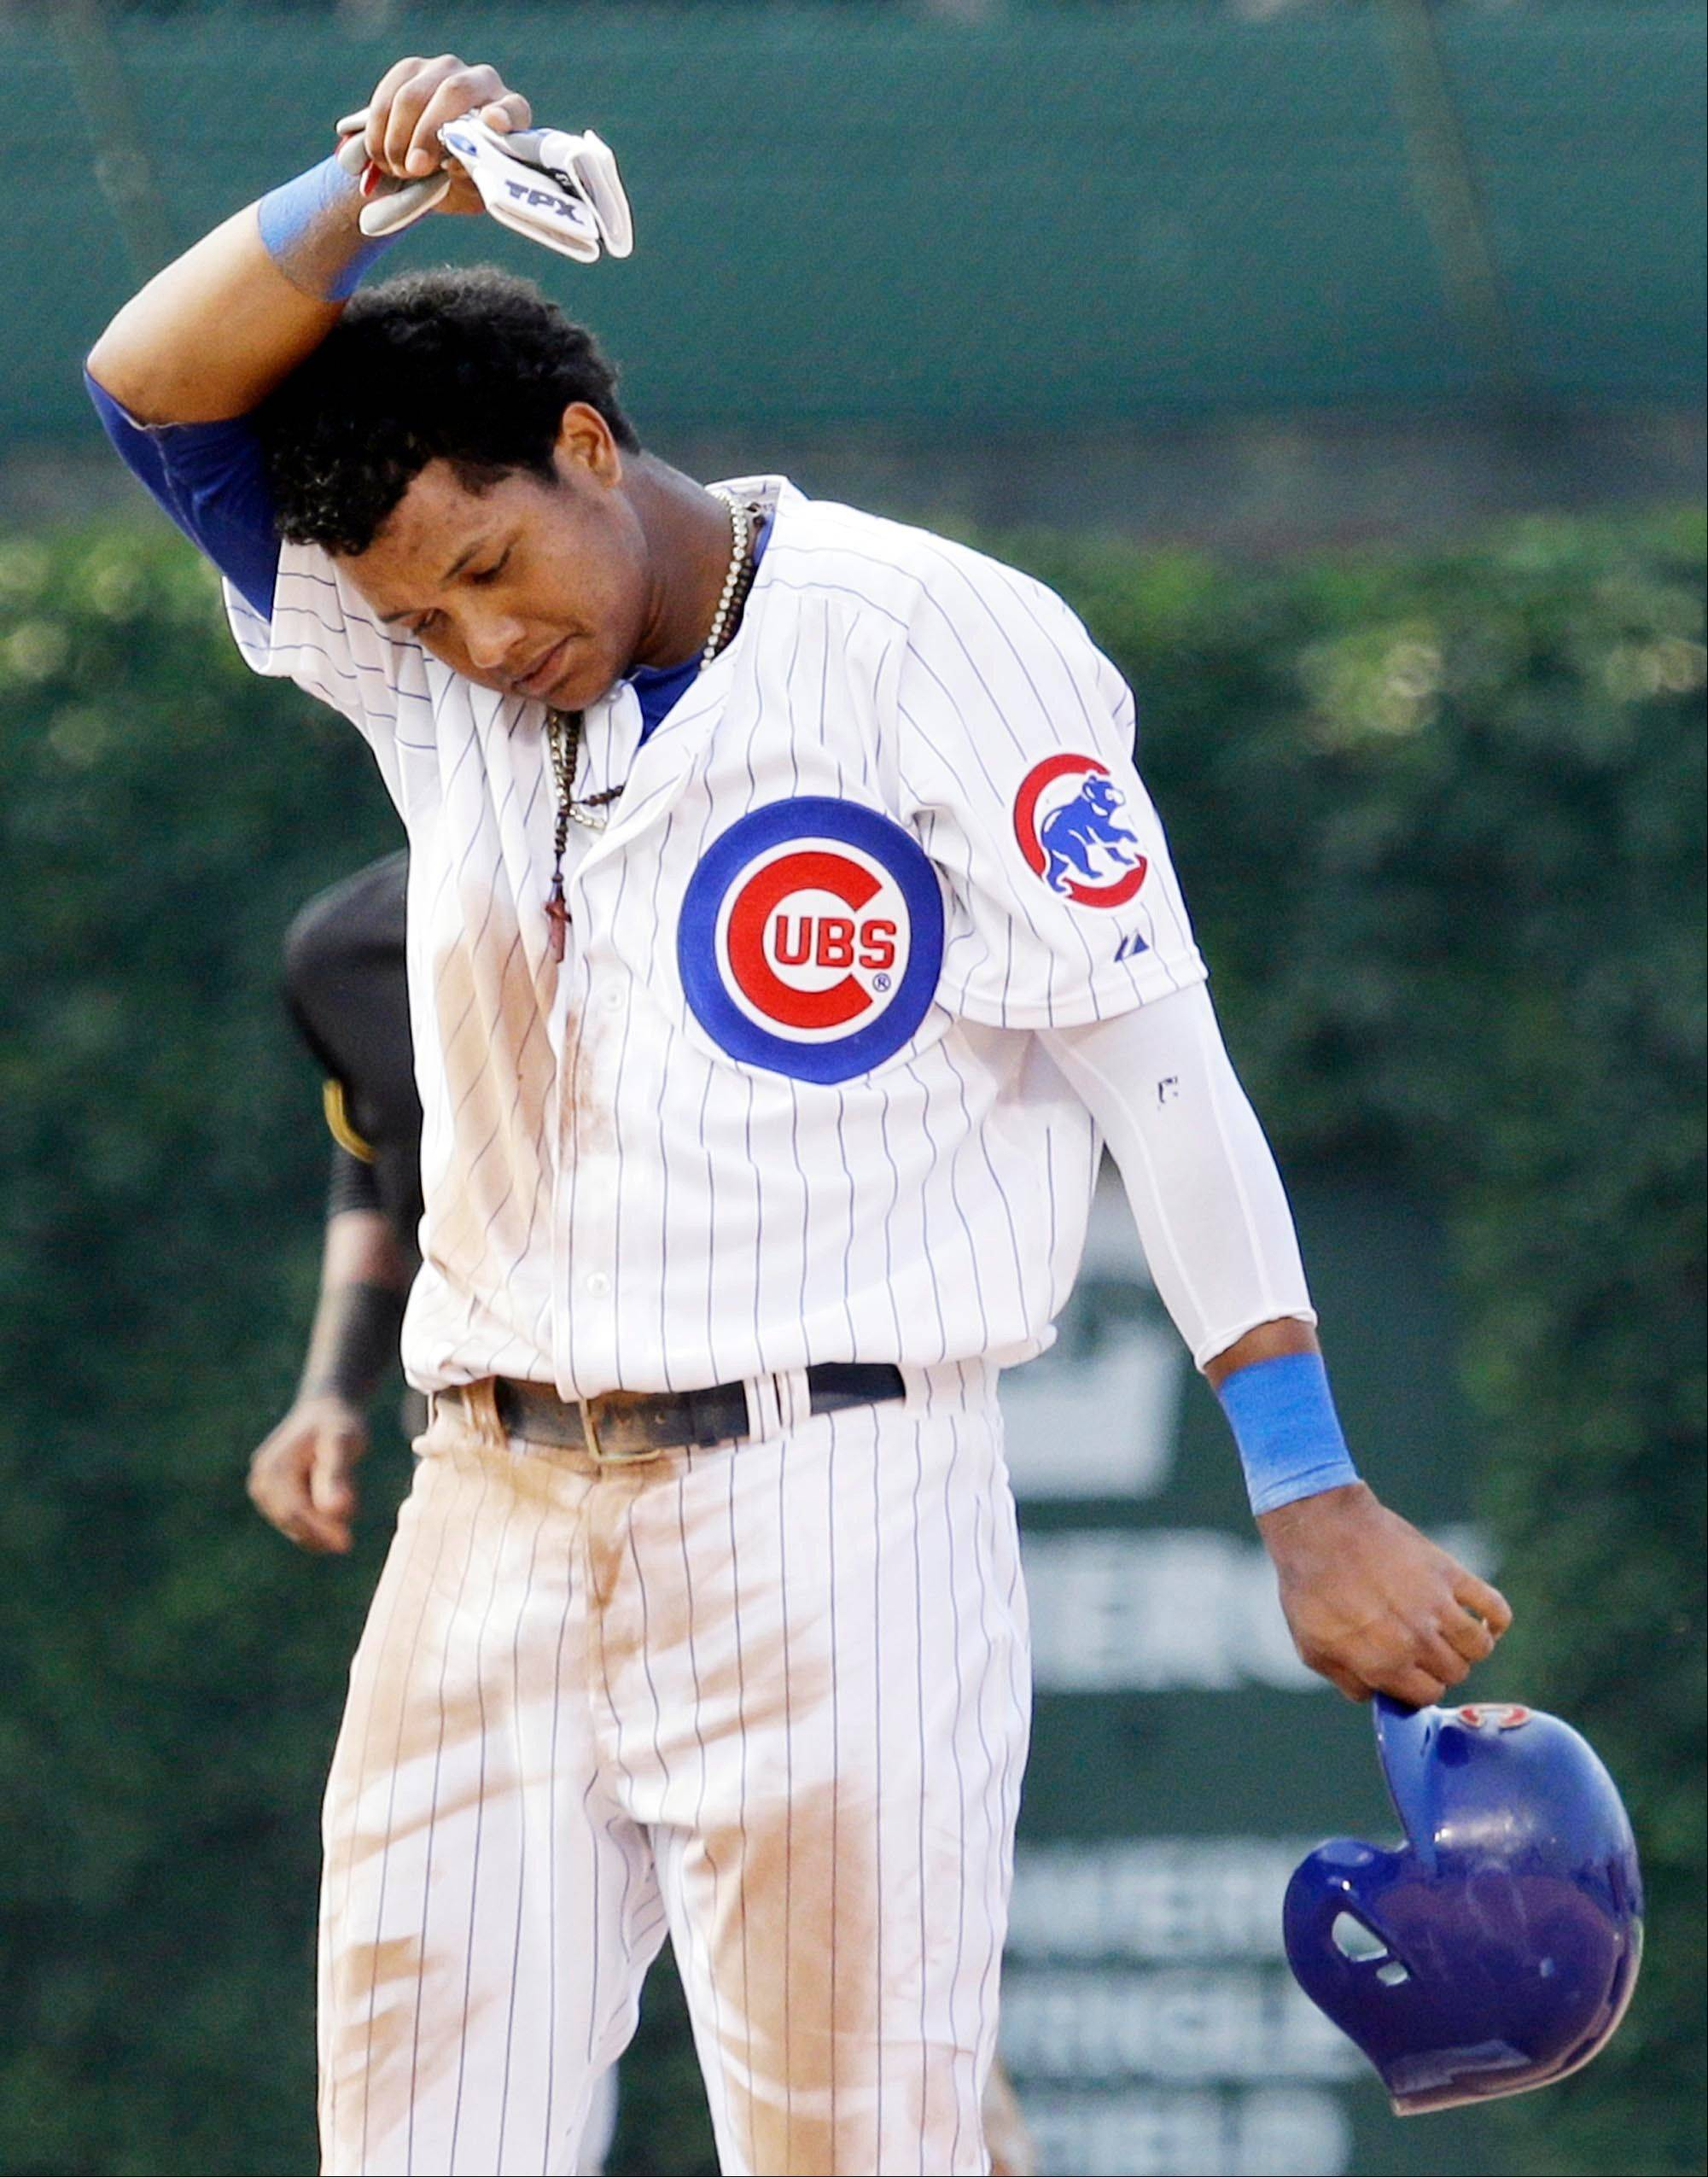 The Cubs� Starlin Castro wipes his face after he was tagged out by Pittsburgh Pirates second baseman Neil Walker during the eighth inning Friday in Chicago